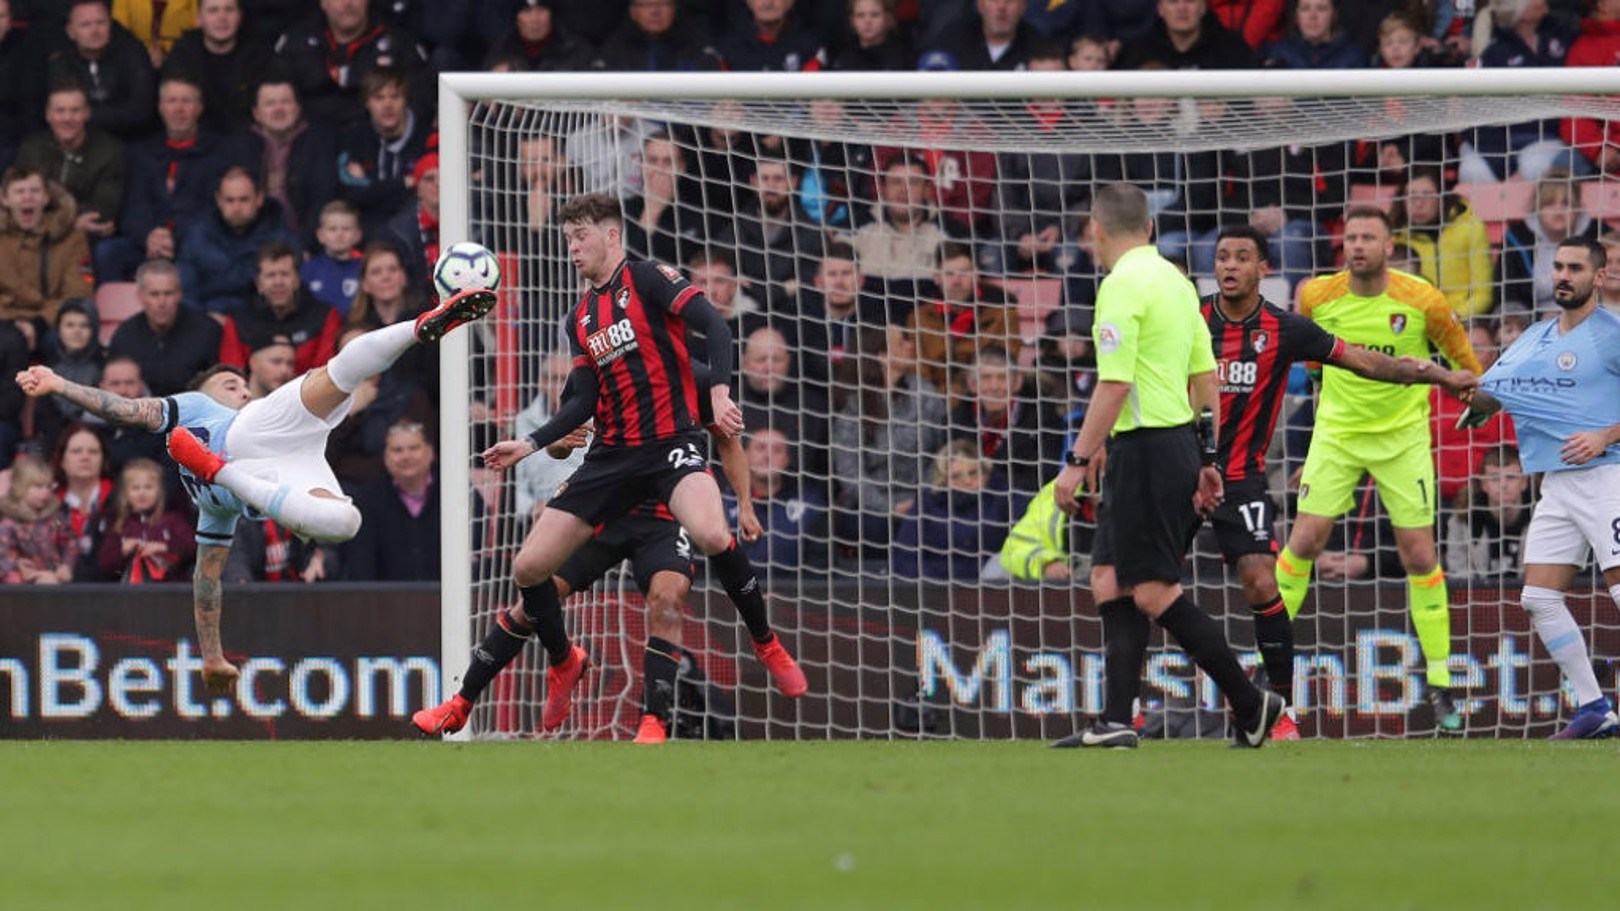 Bournemouth v City: Tickets sold out